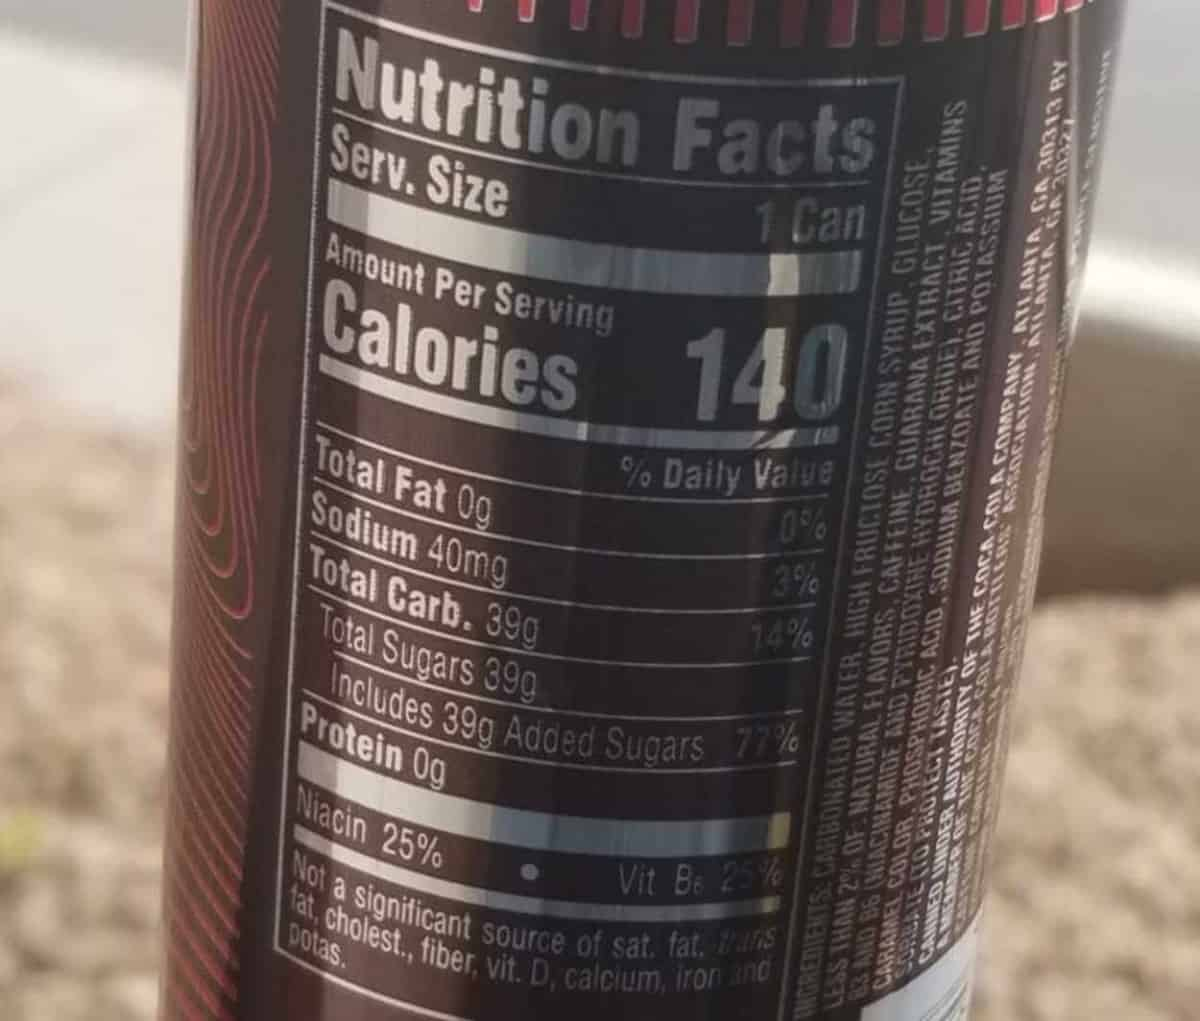 Nutrition facts label of Coca-Cola Energy drink